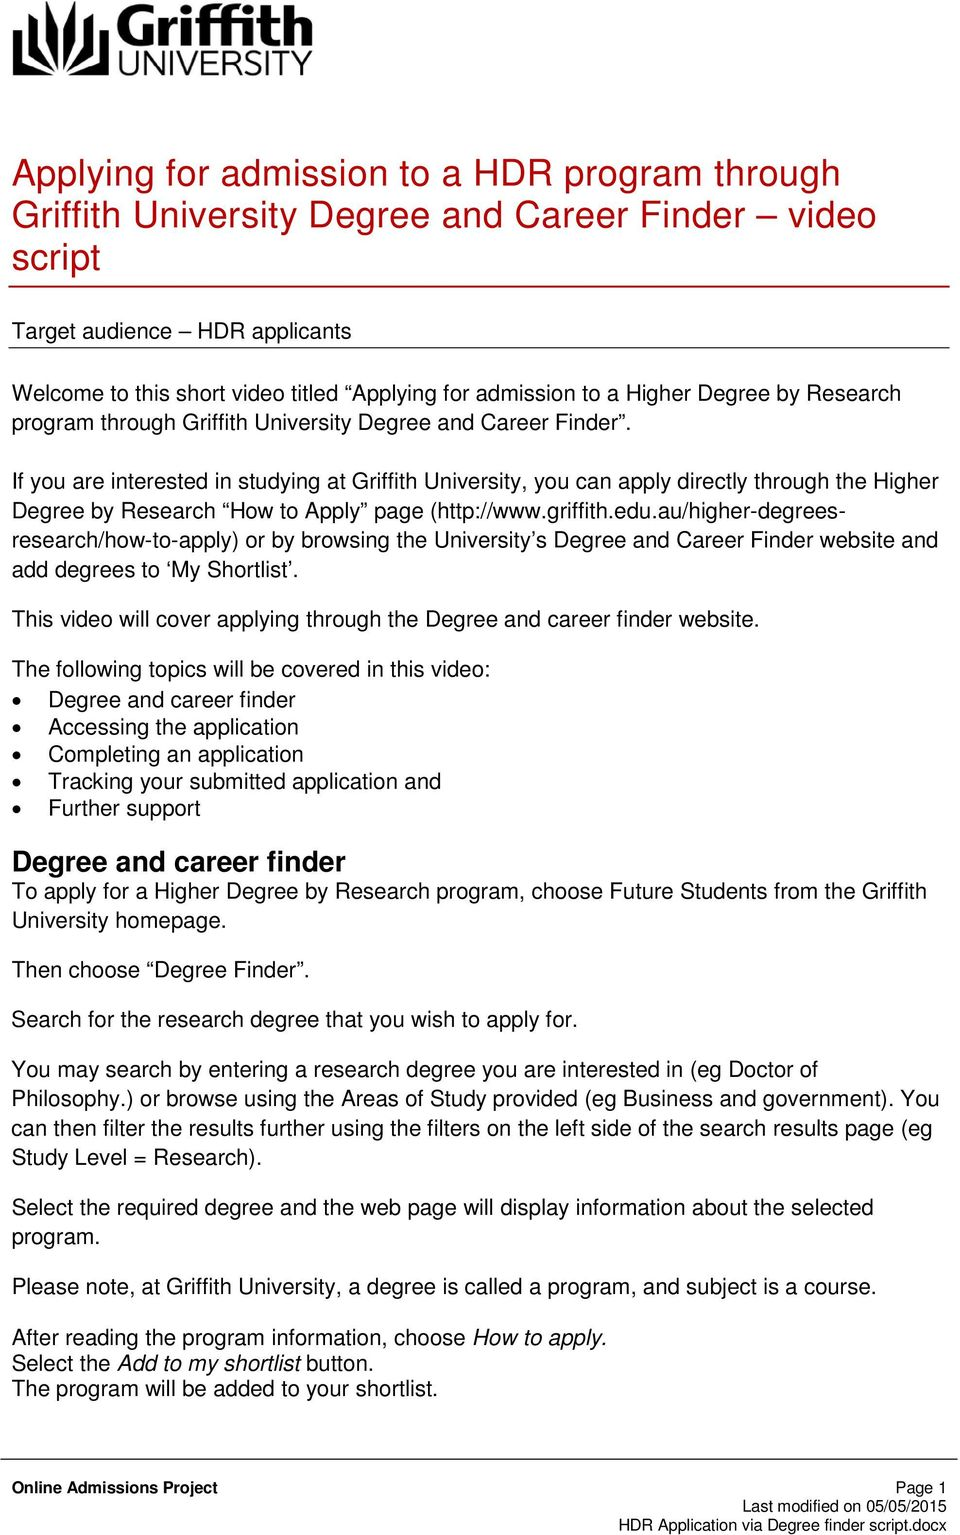 If you are interested in studying at Griffith University, you can apply directly through the Higher Degree by Research How to Apply page (http://www.griffith.edu.